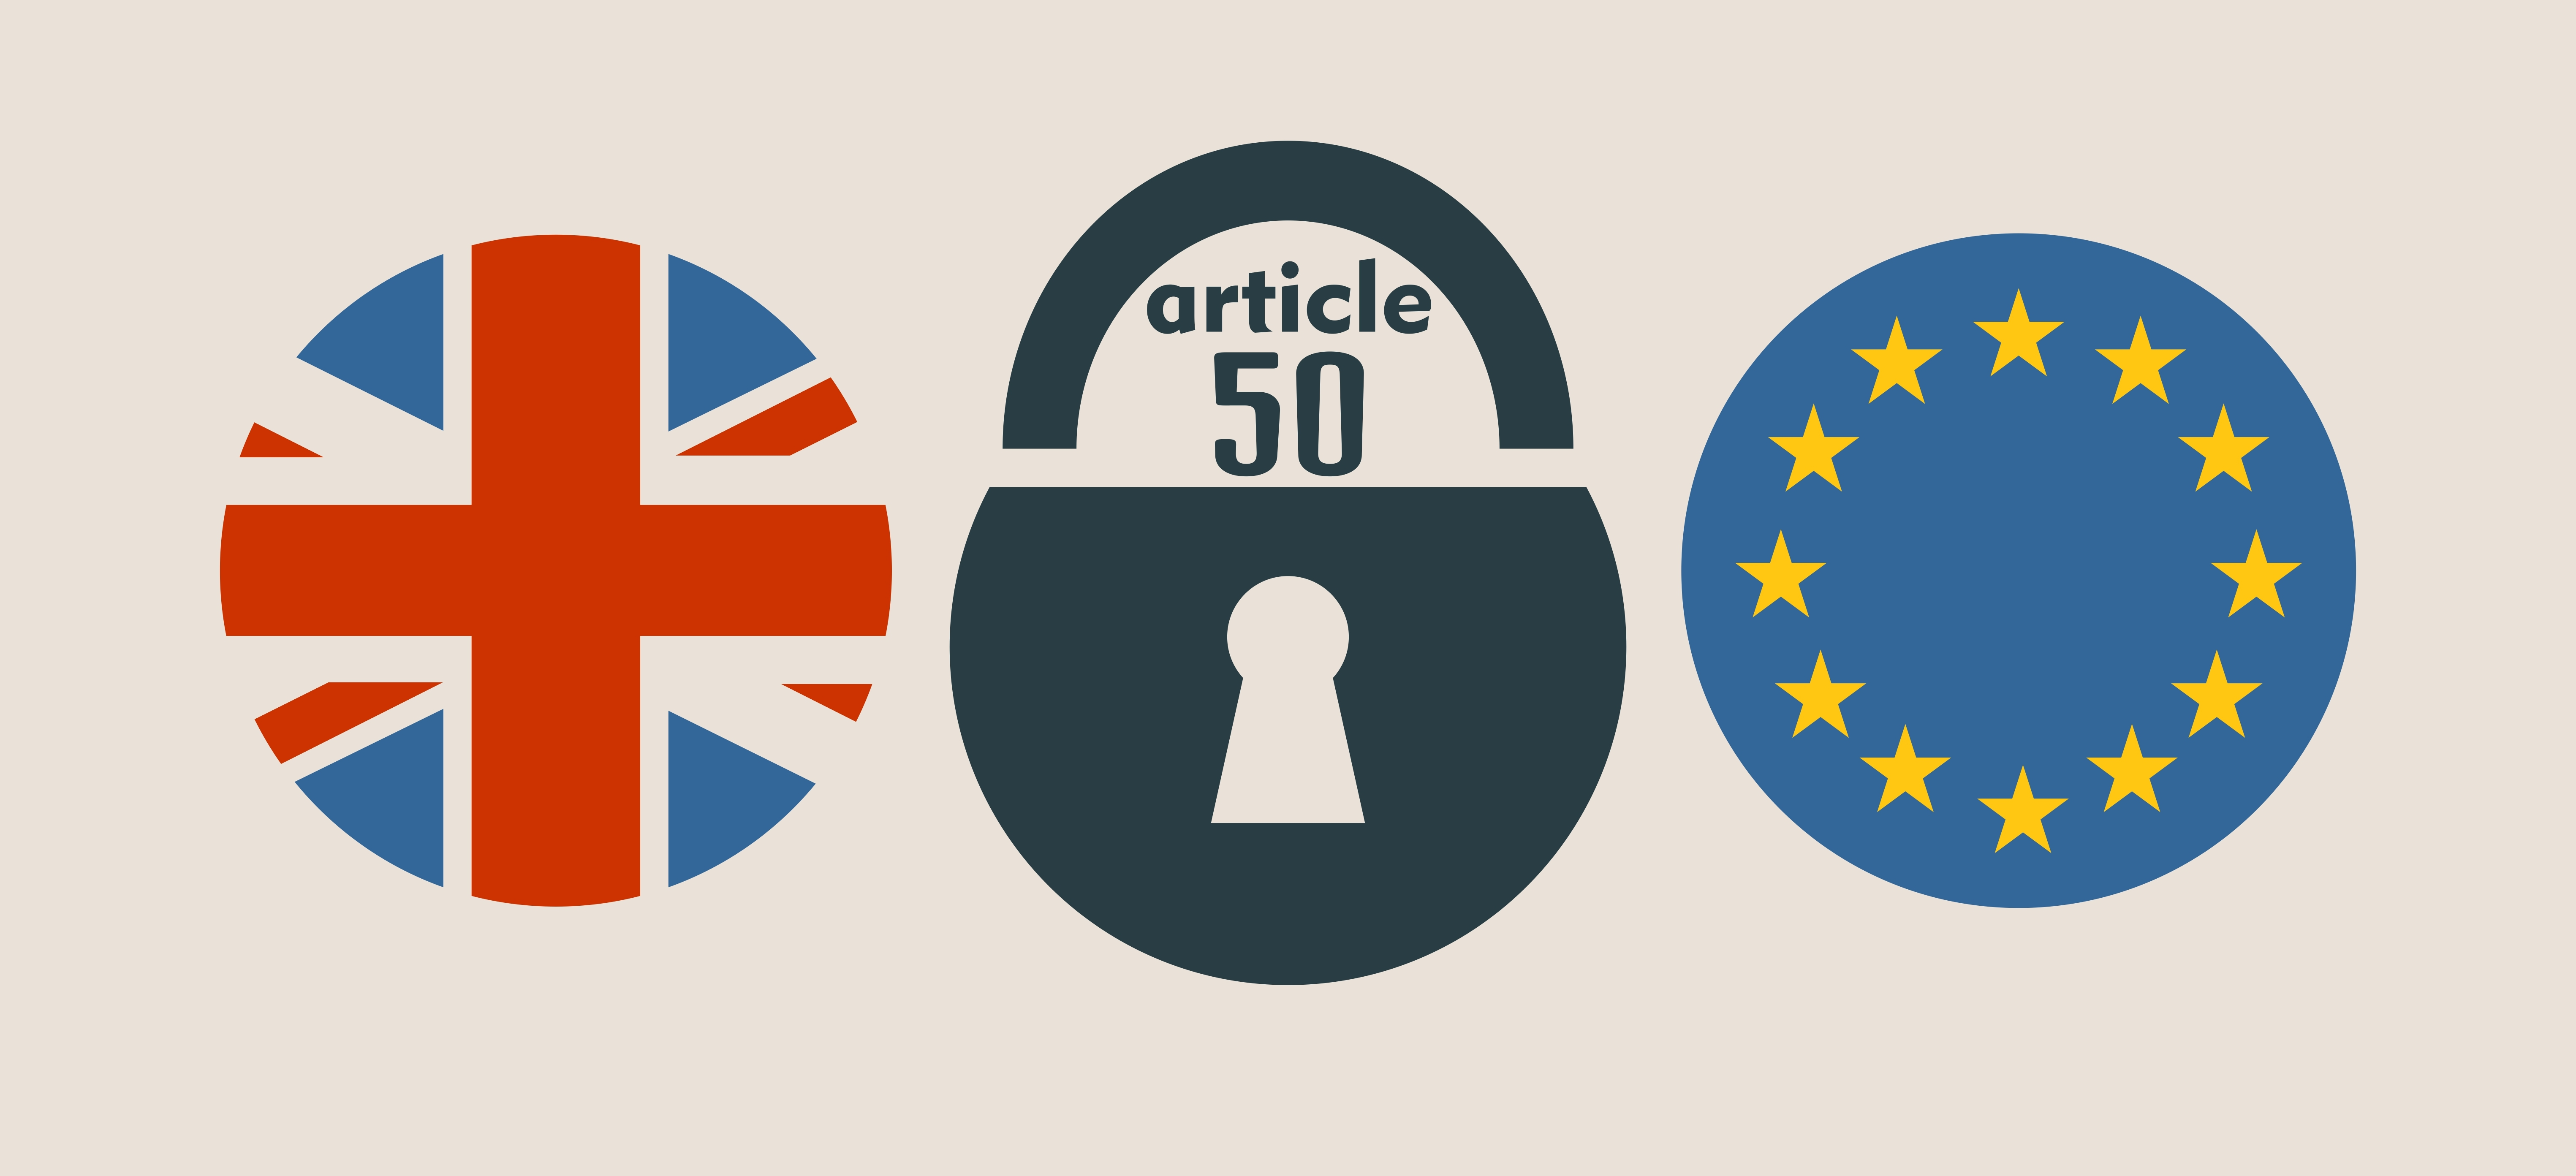 Article 50: Tackling Brexit uncertainty in 2017